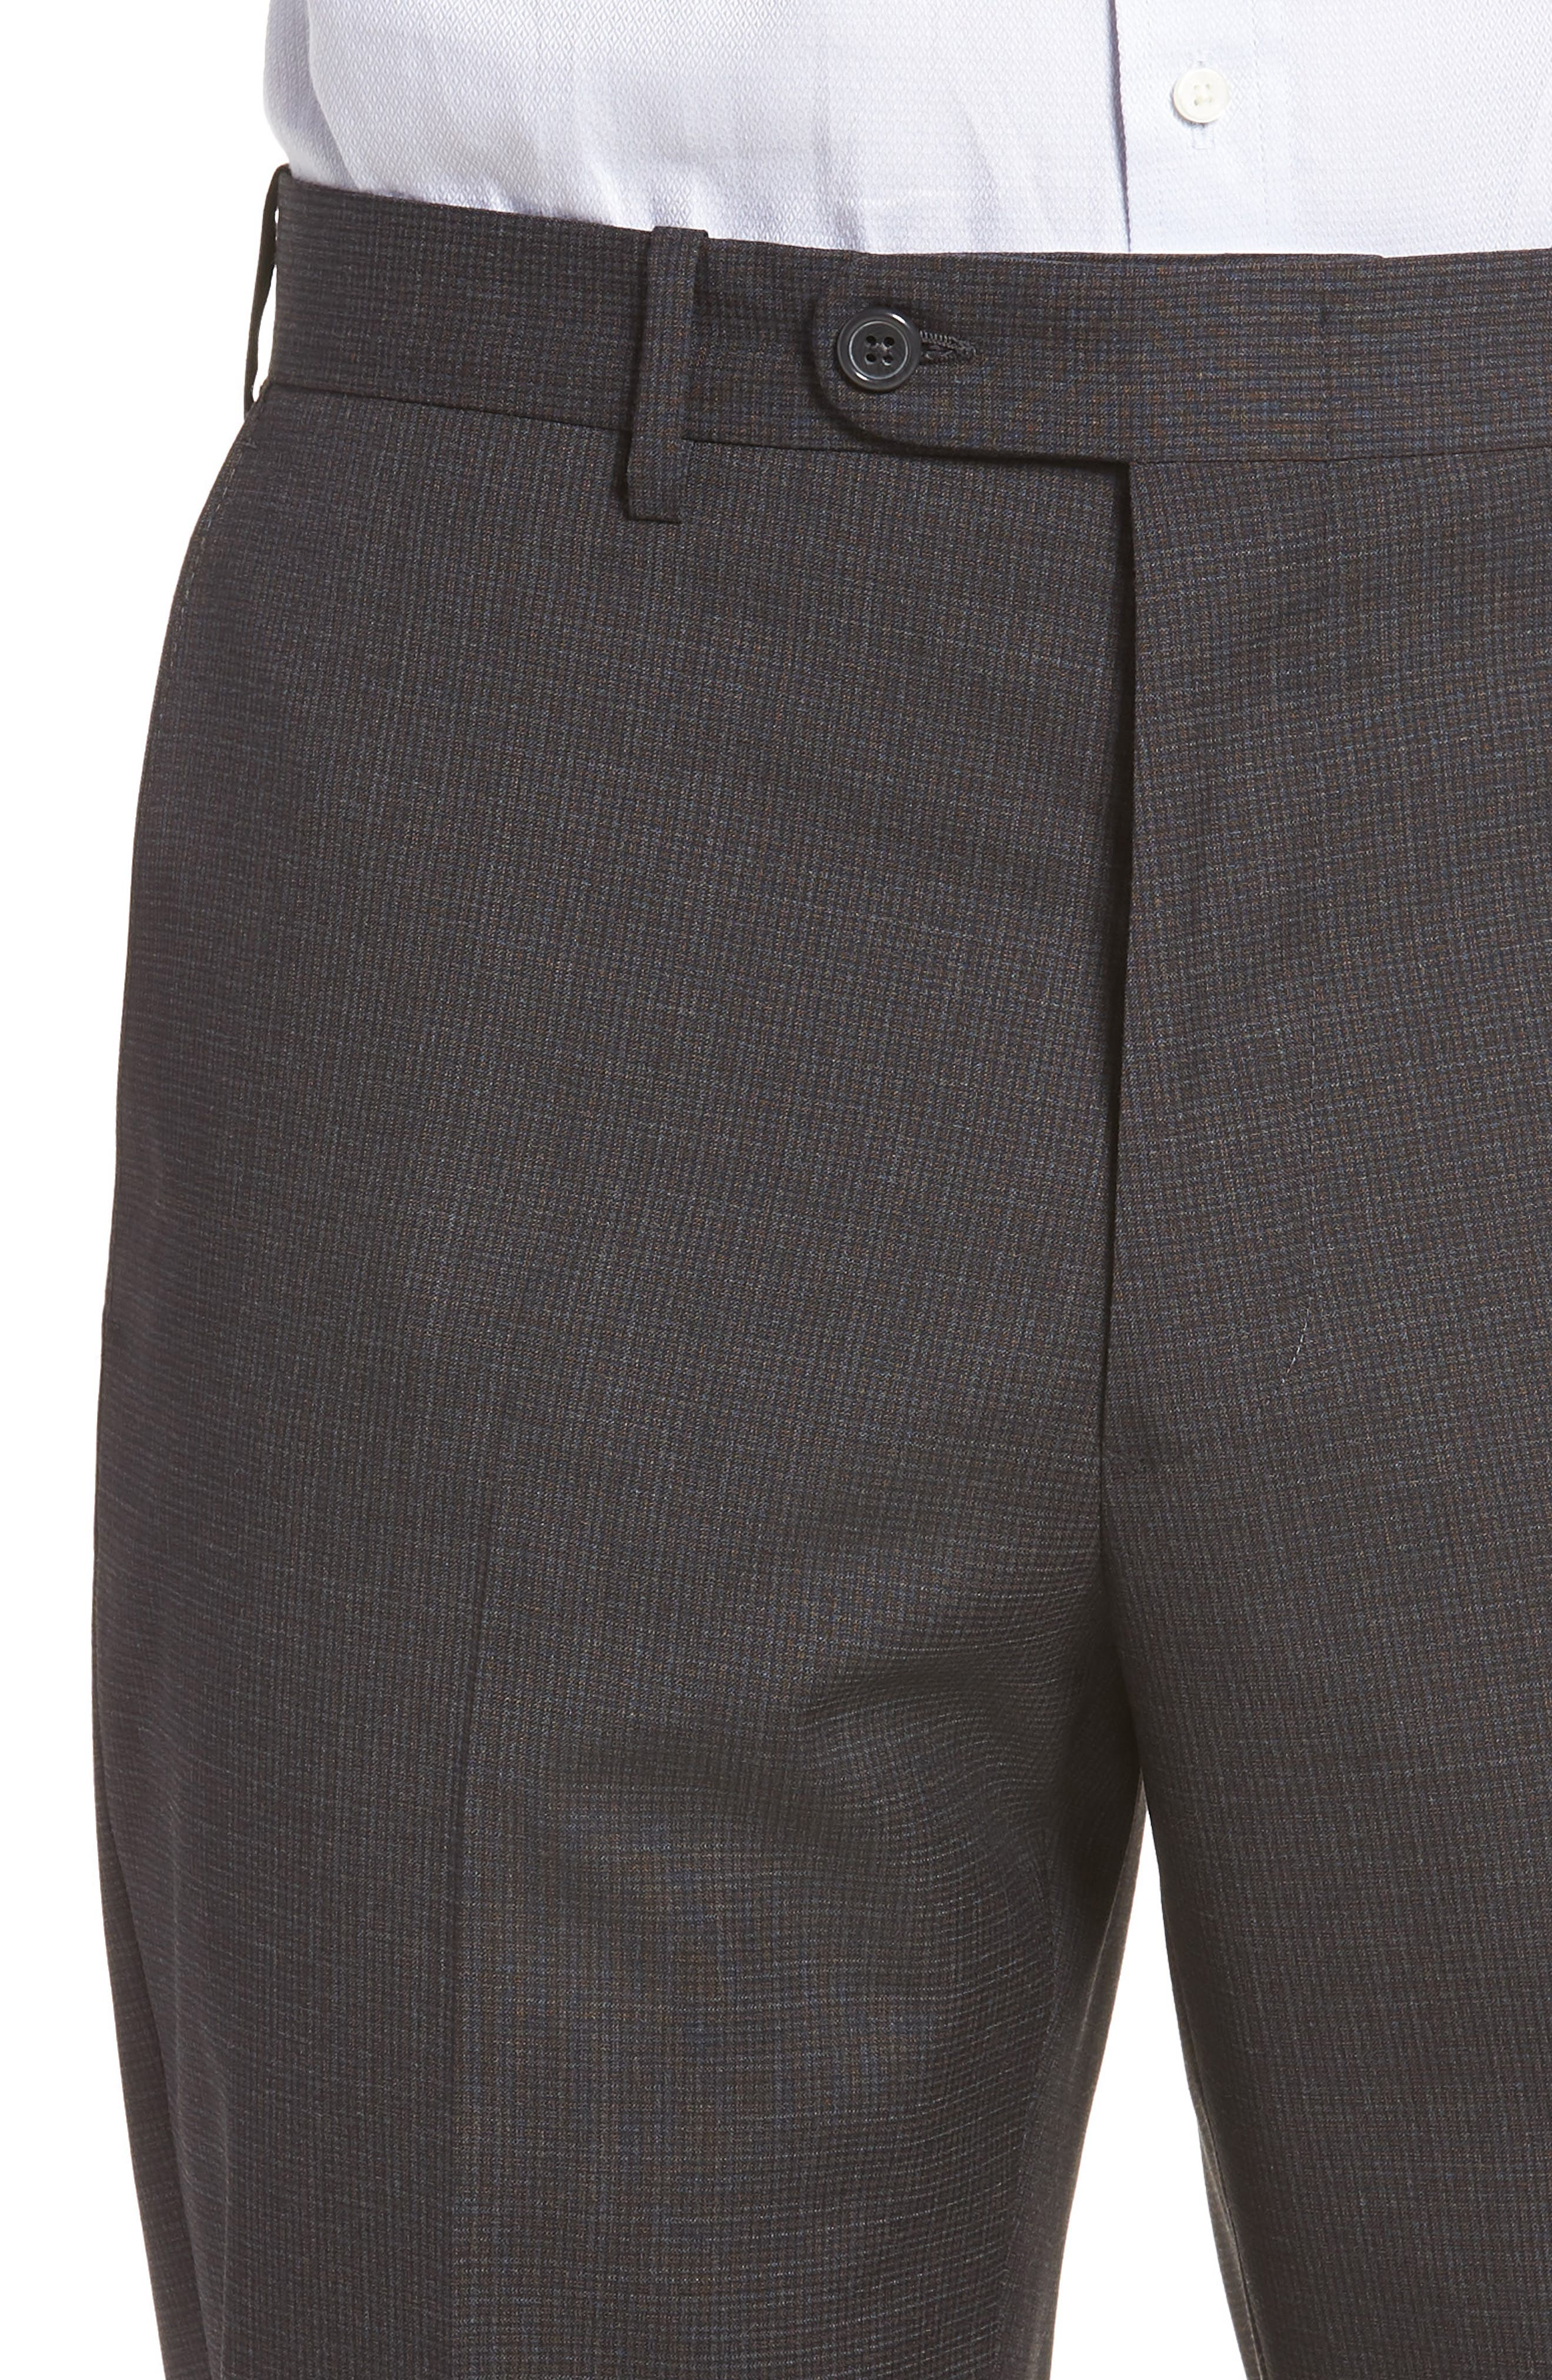 Torino Traditional Fit Flat Front Houndstooth Trousers,                             Alternate thumbnail 4, color,                             CHARCOAL